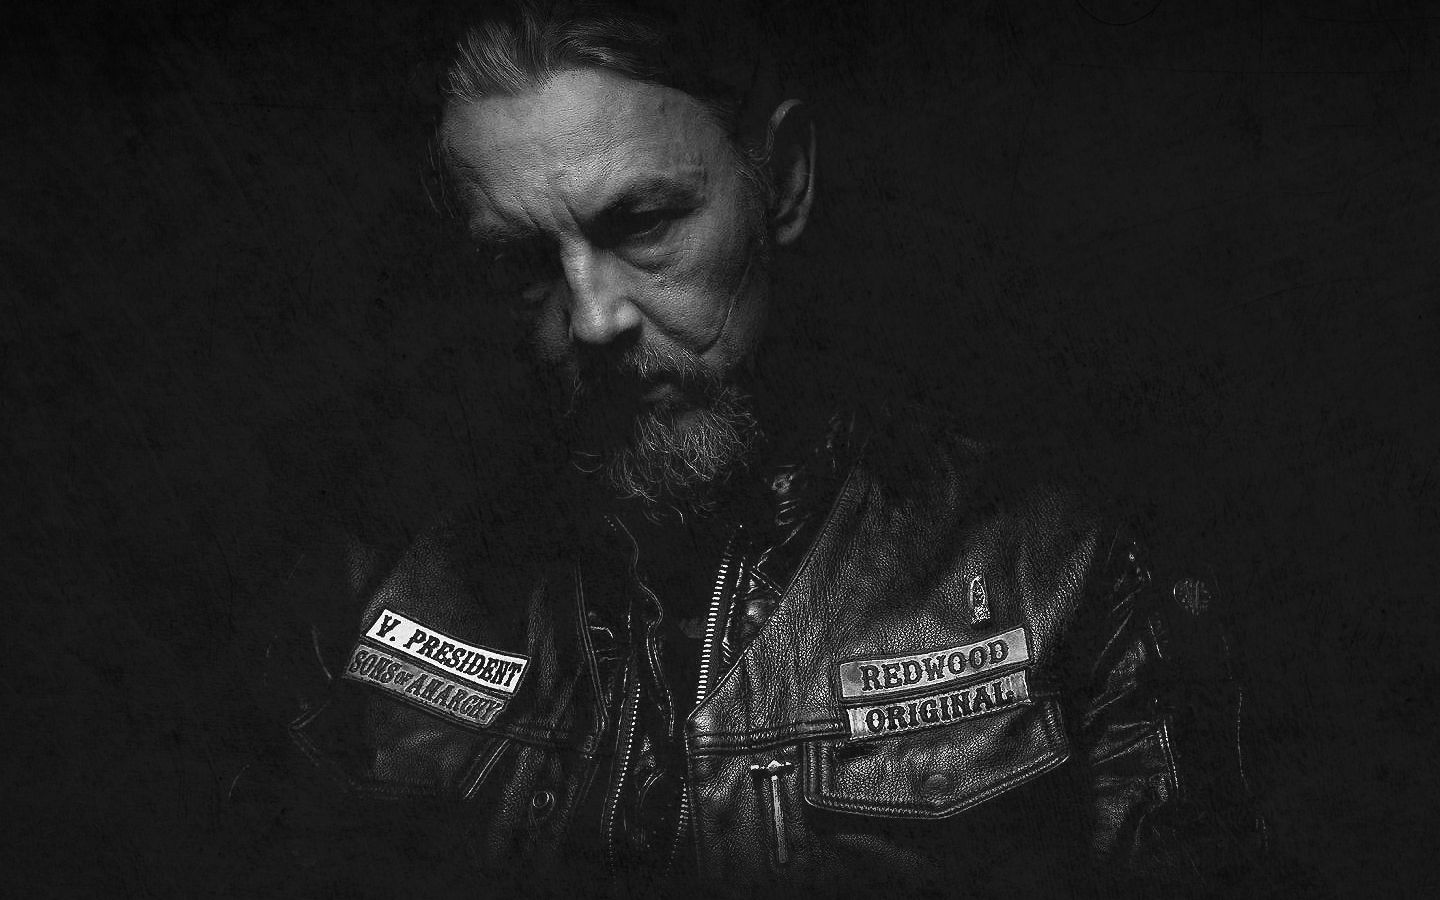 Soa Wallpaper Chibs Anarchy Sons Of Anarchy Samcro